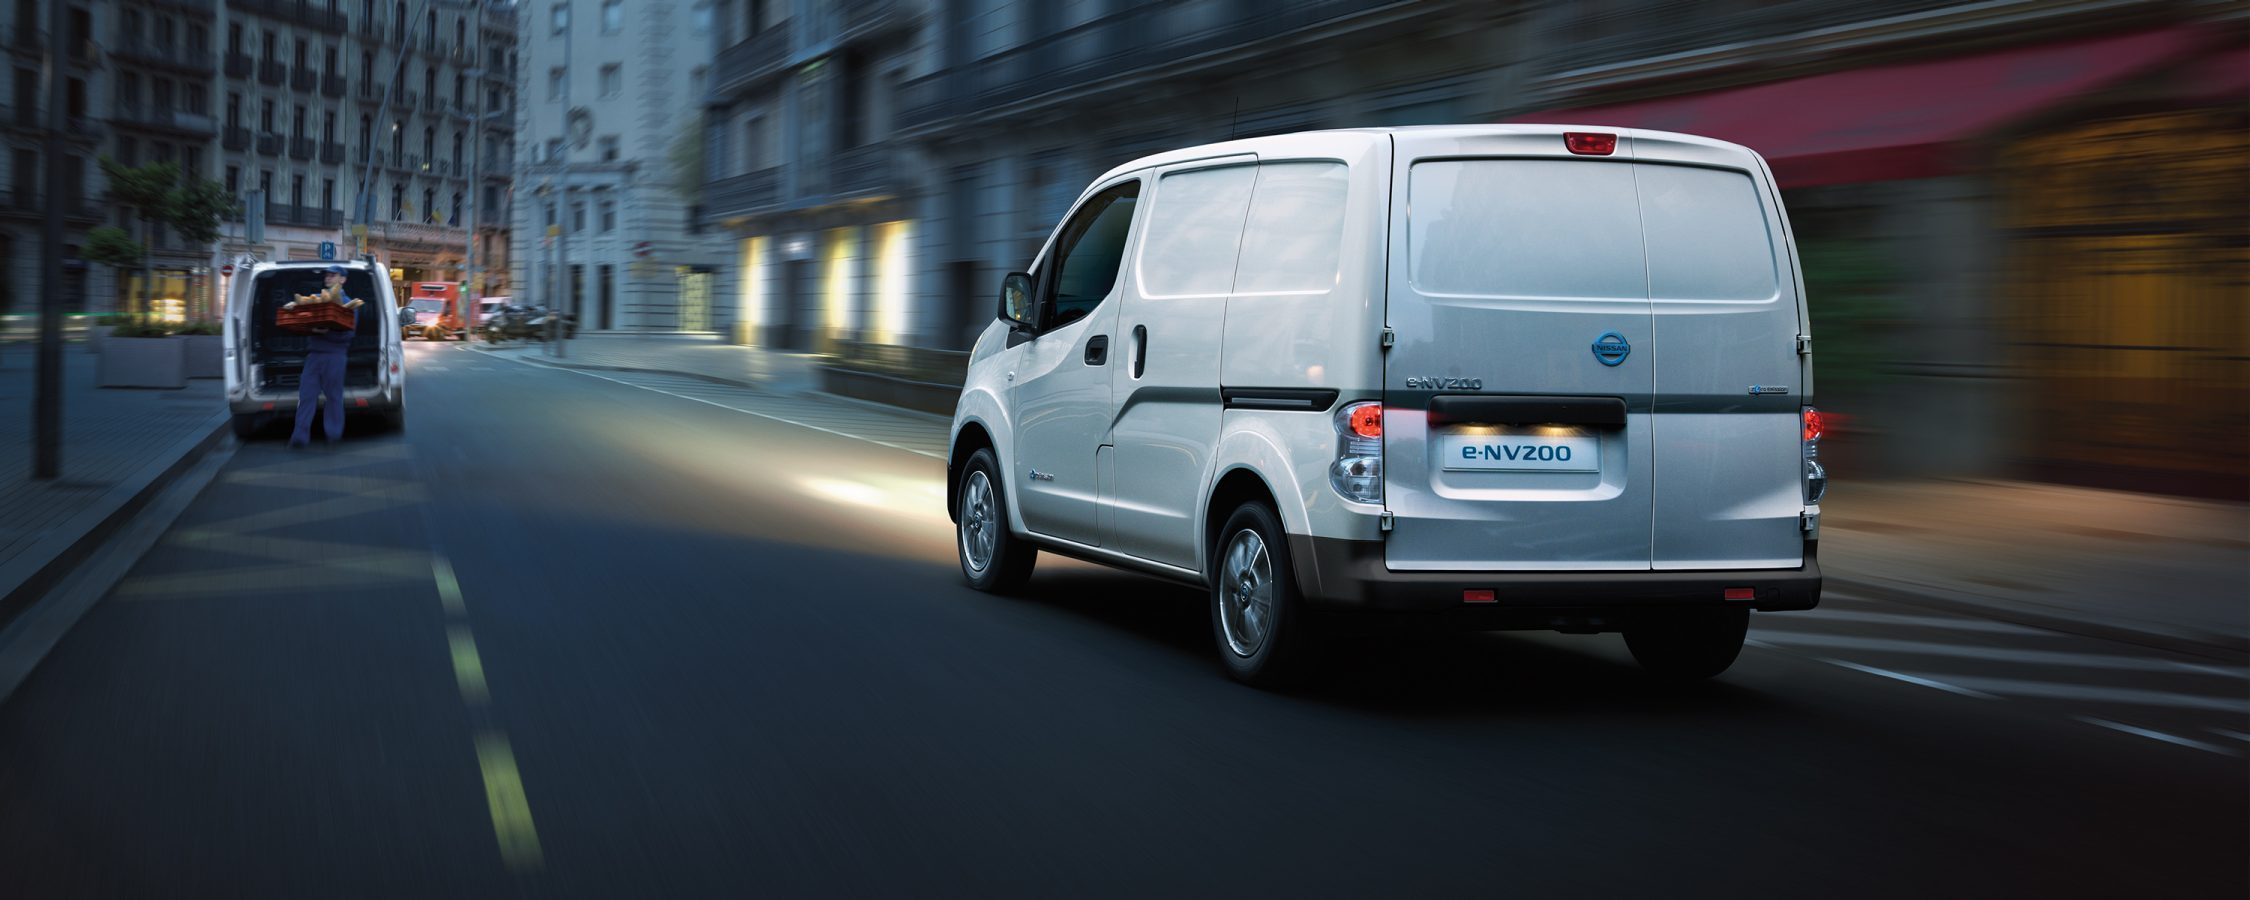 New Nissan e-NV200 VAN driving in the city